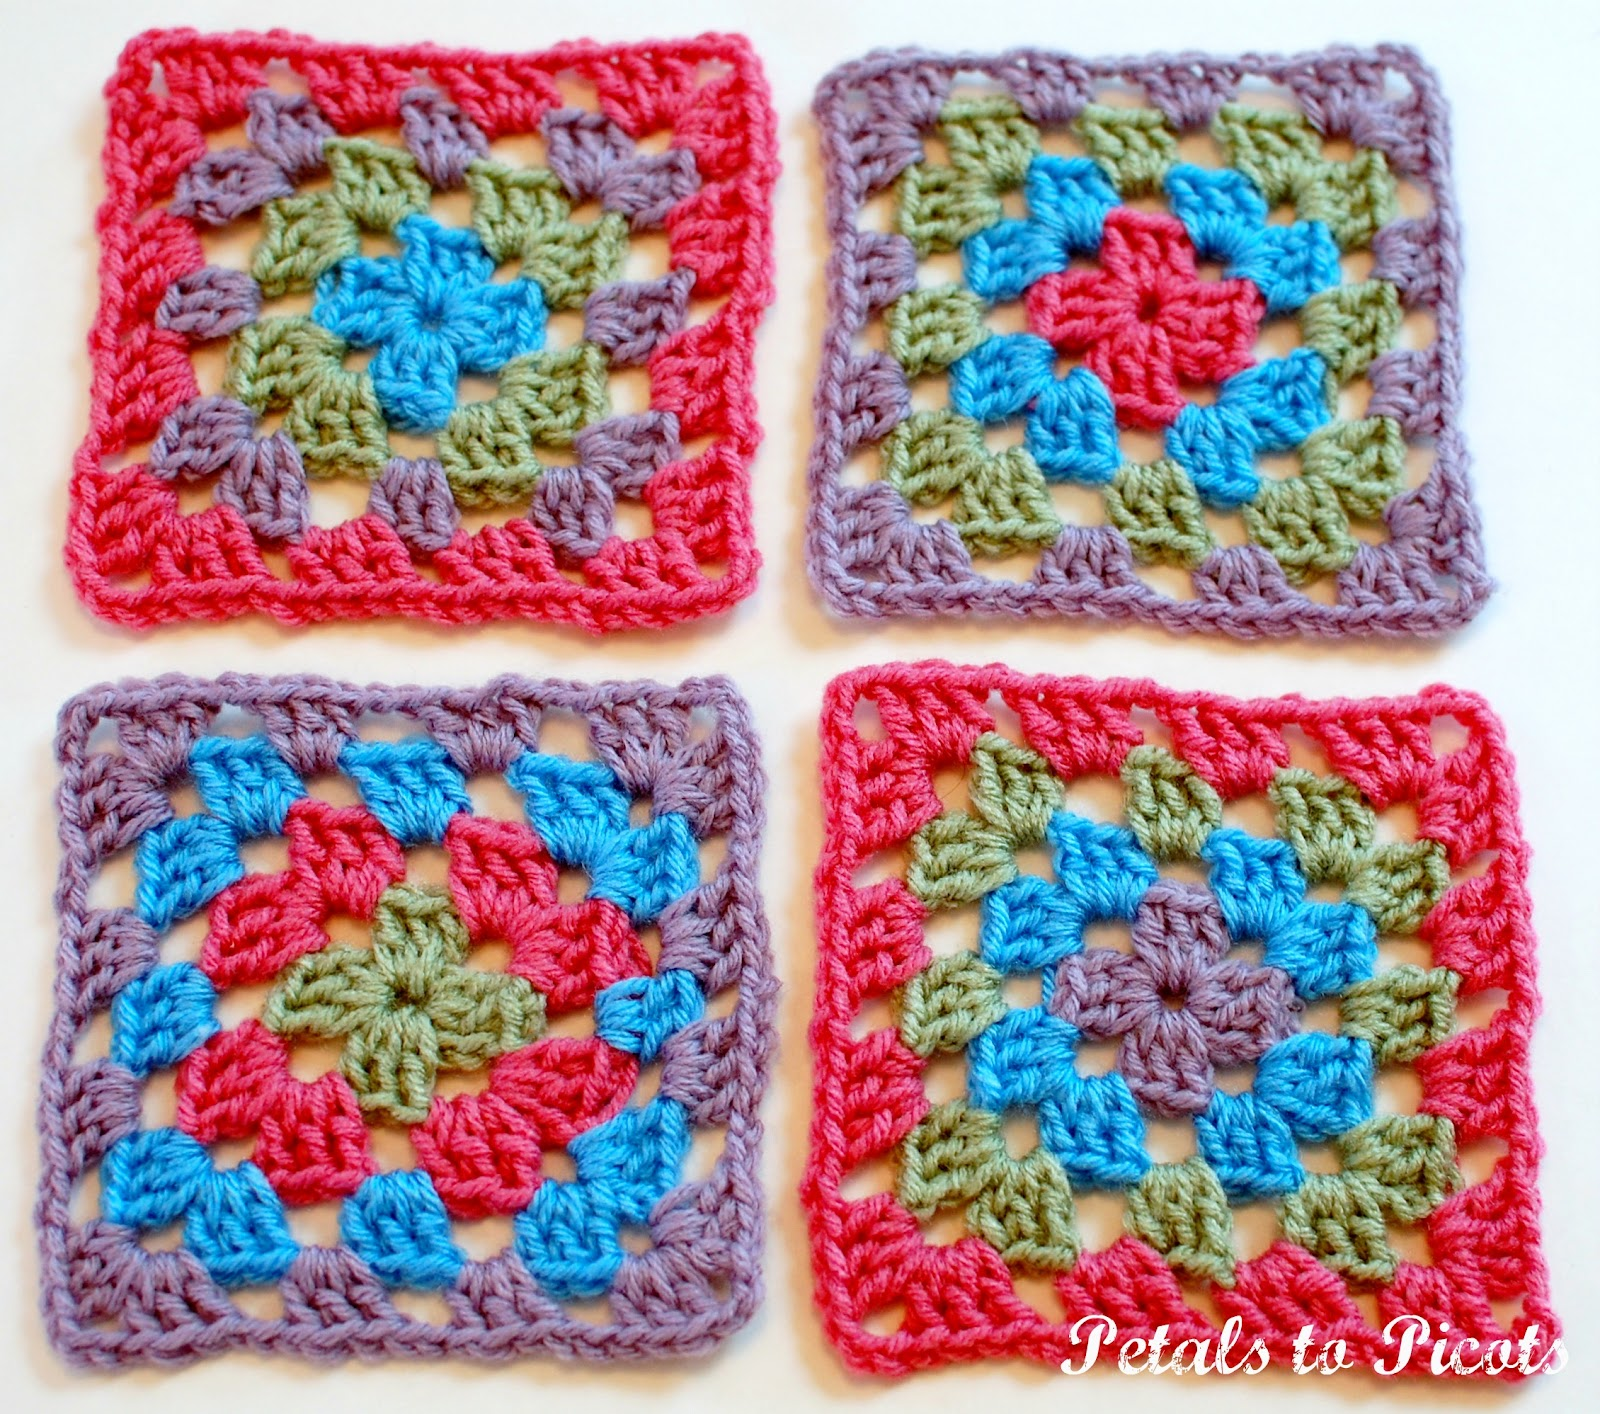 Crochet Granny Square Pattern : How to Crochet a Classic Granny Square: Granny Square ...